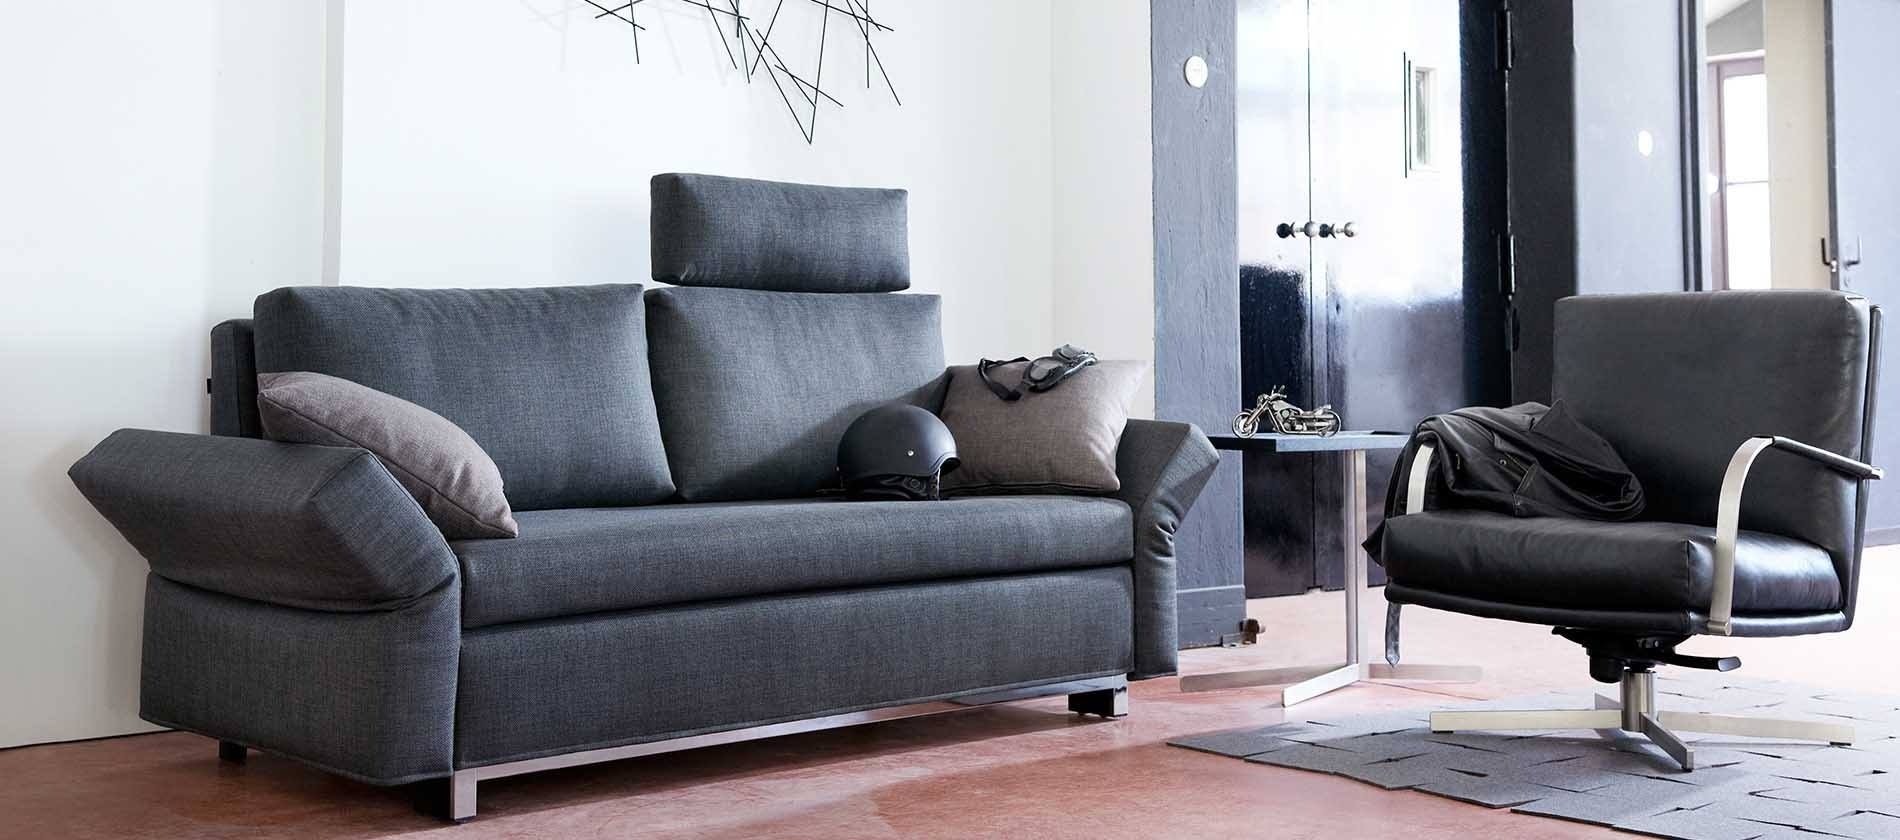 schlafsofa mex von signet schlafsofa mit viel komfort. Black Bedroom Furniture Sets. Home Design Ideas